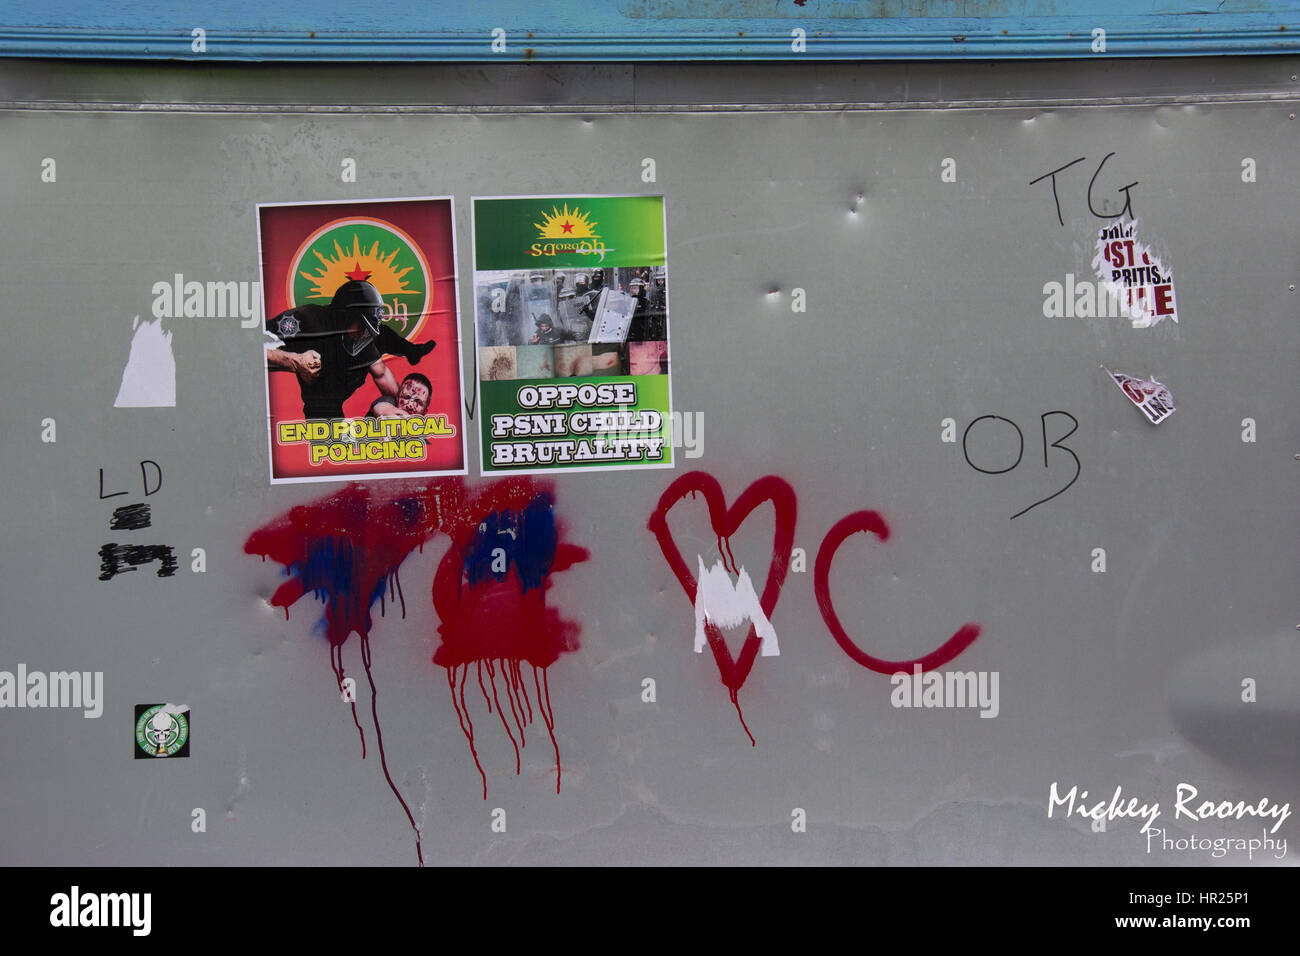 Saoraodh posters in Derry's Bogside - Stock Image